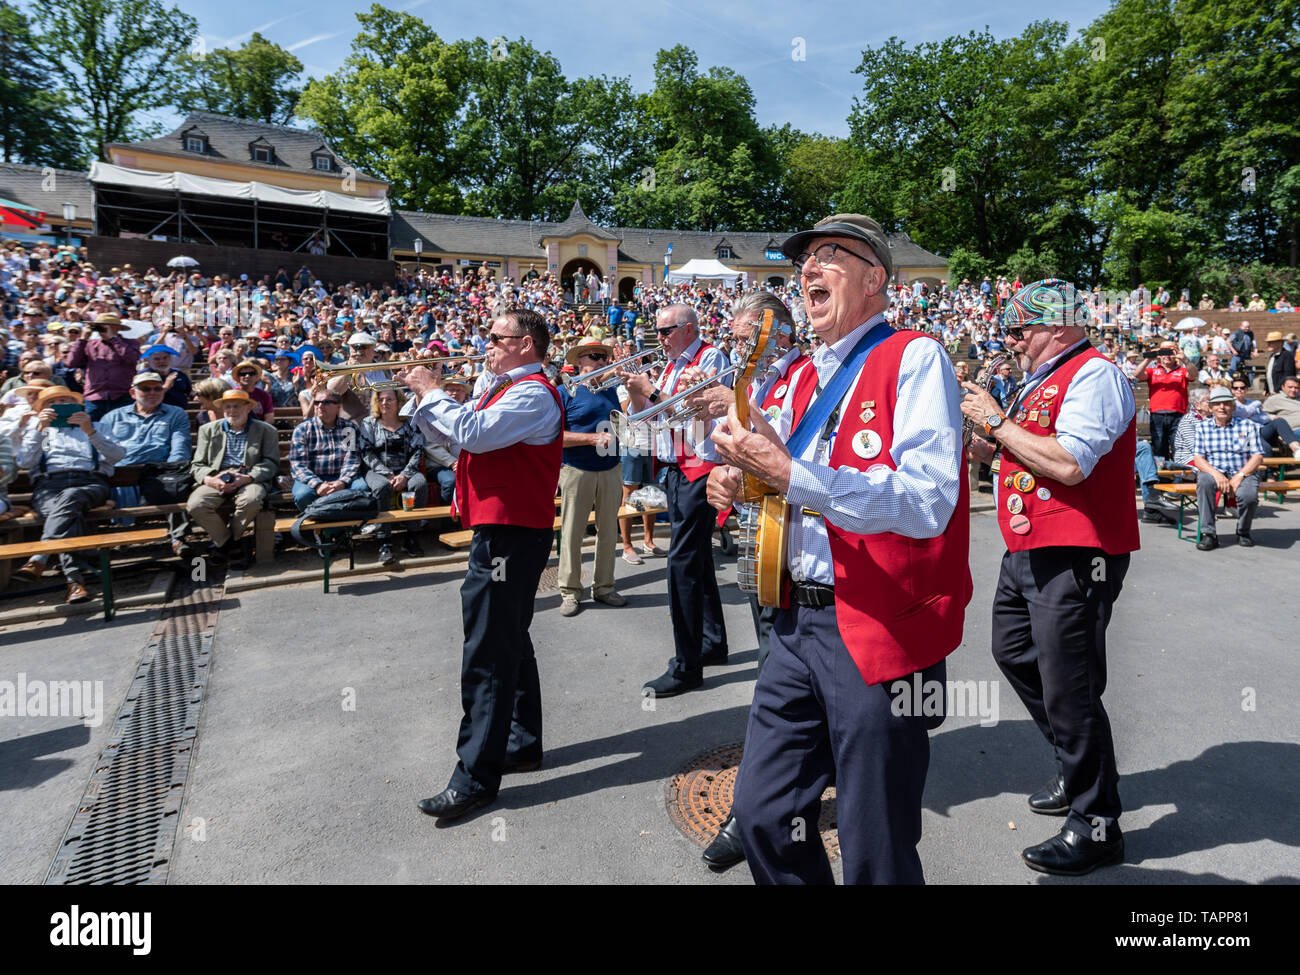 26 May 2019, Saxony, Dresden: Musicians of the Lamarotte